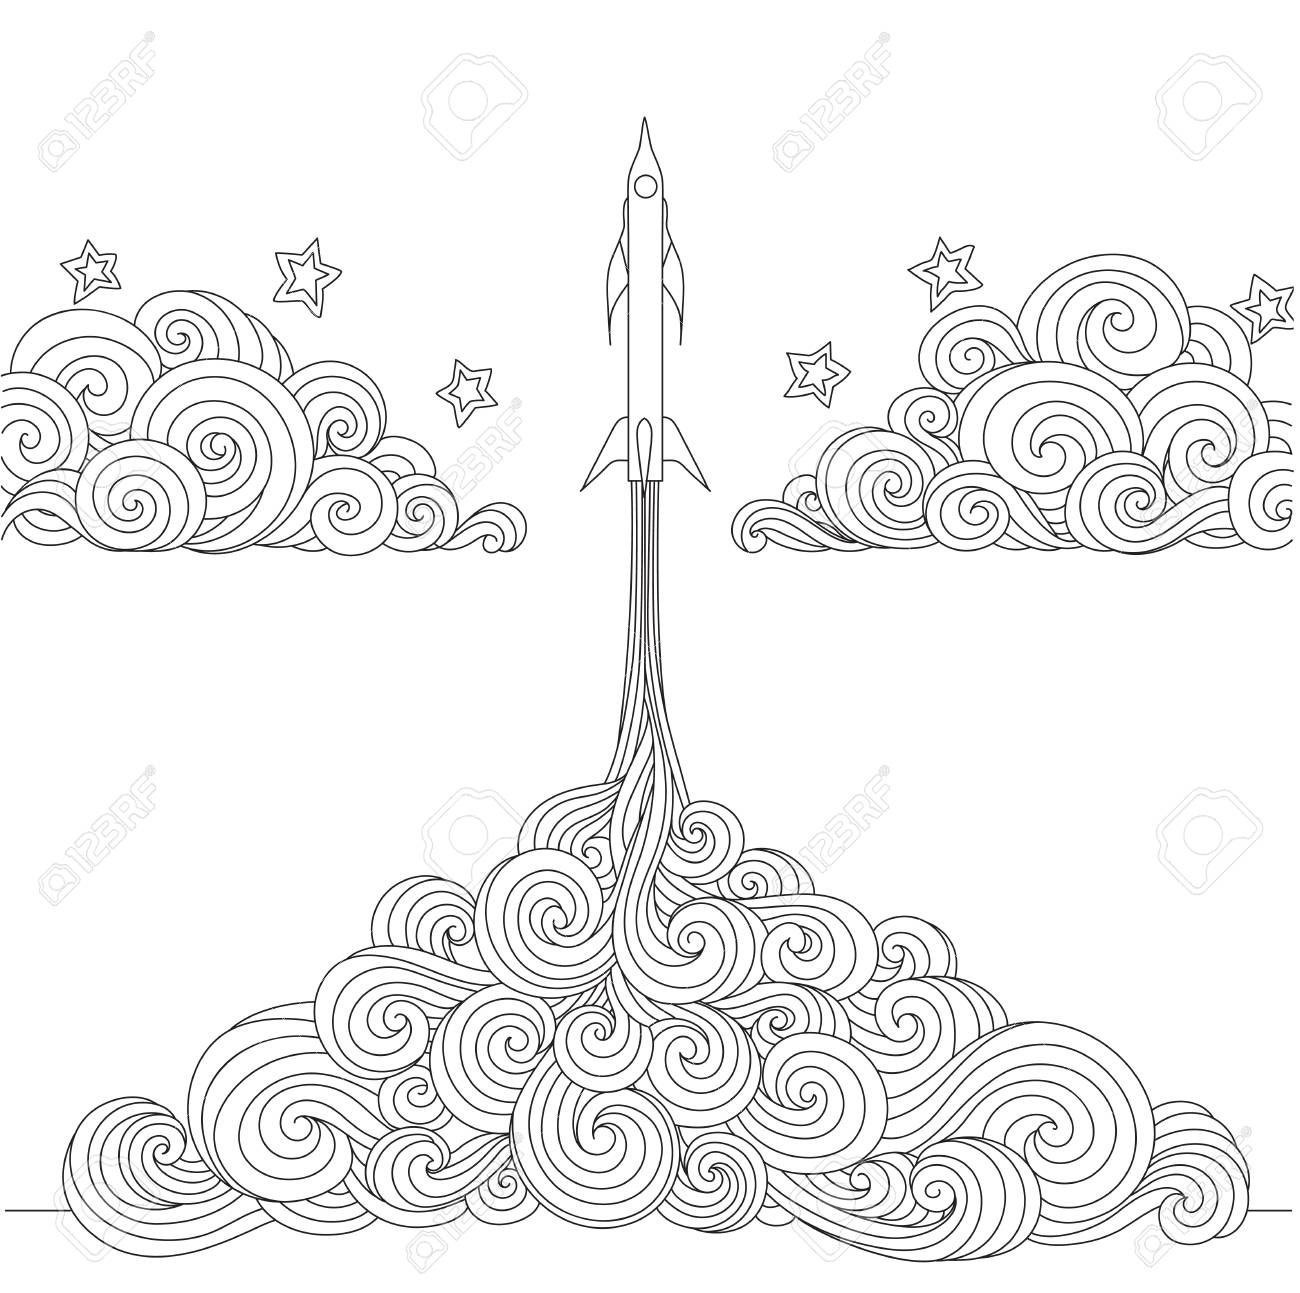 Line Art Design Of A Rocket Launching For Design Element And Coloring Book Page Vector Illust Line Art Design Social Media Design Graphics Vector Illustration